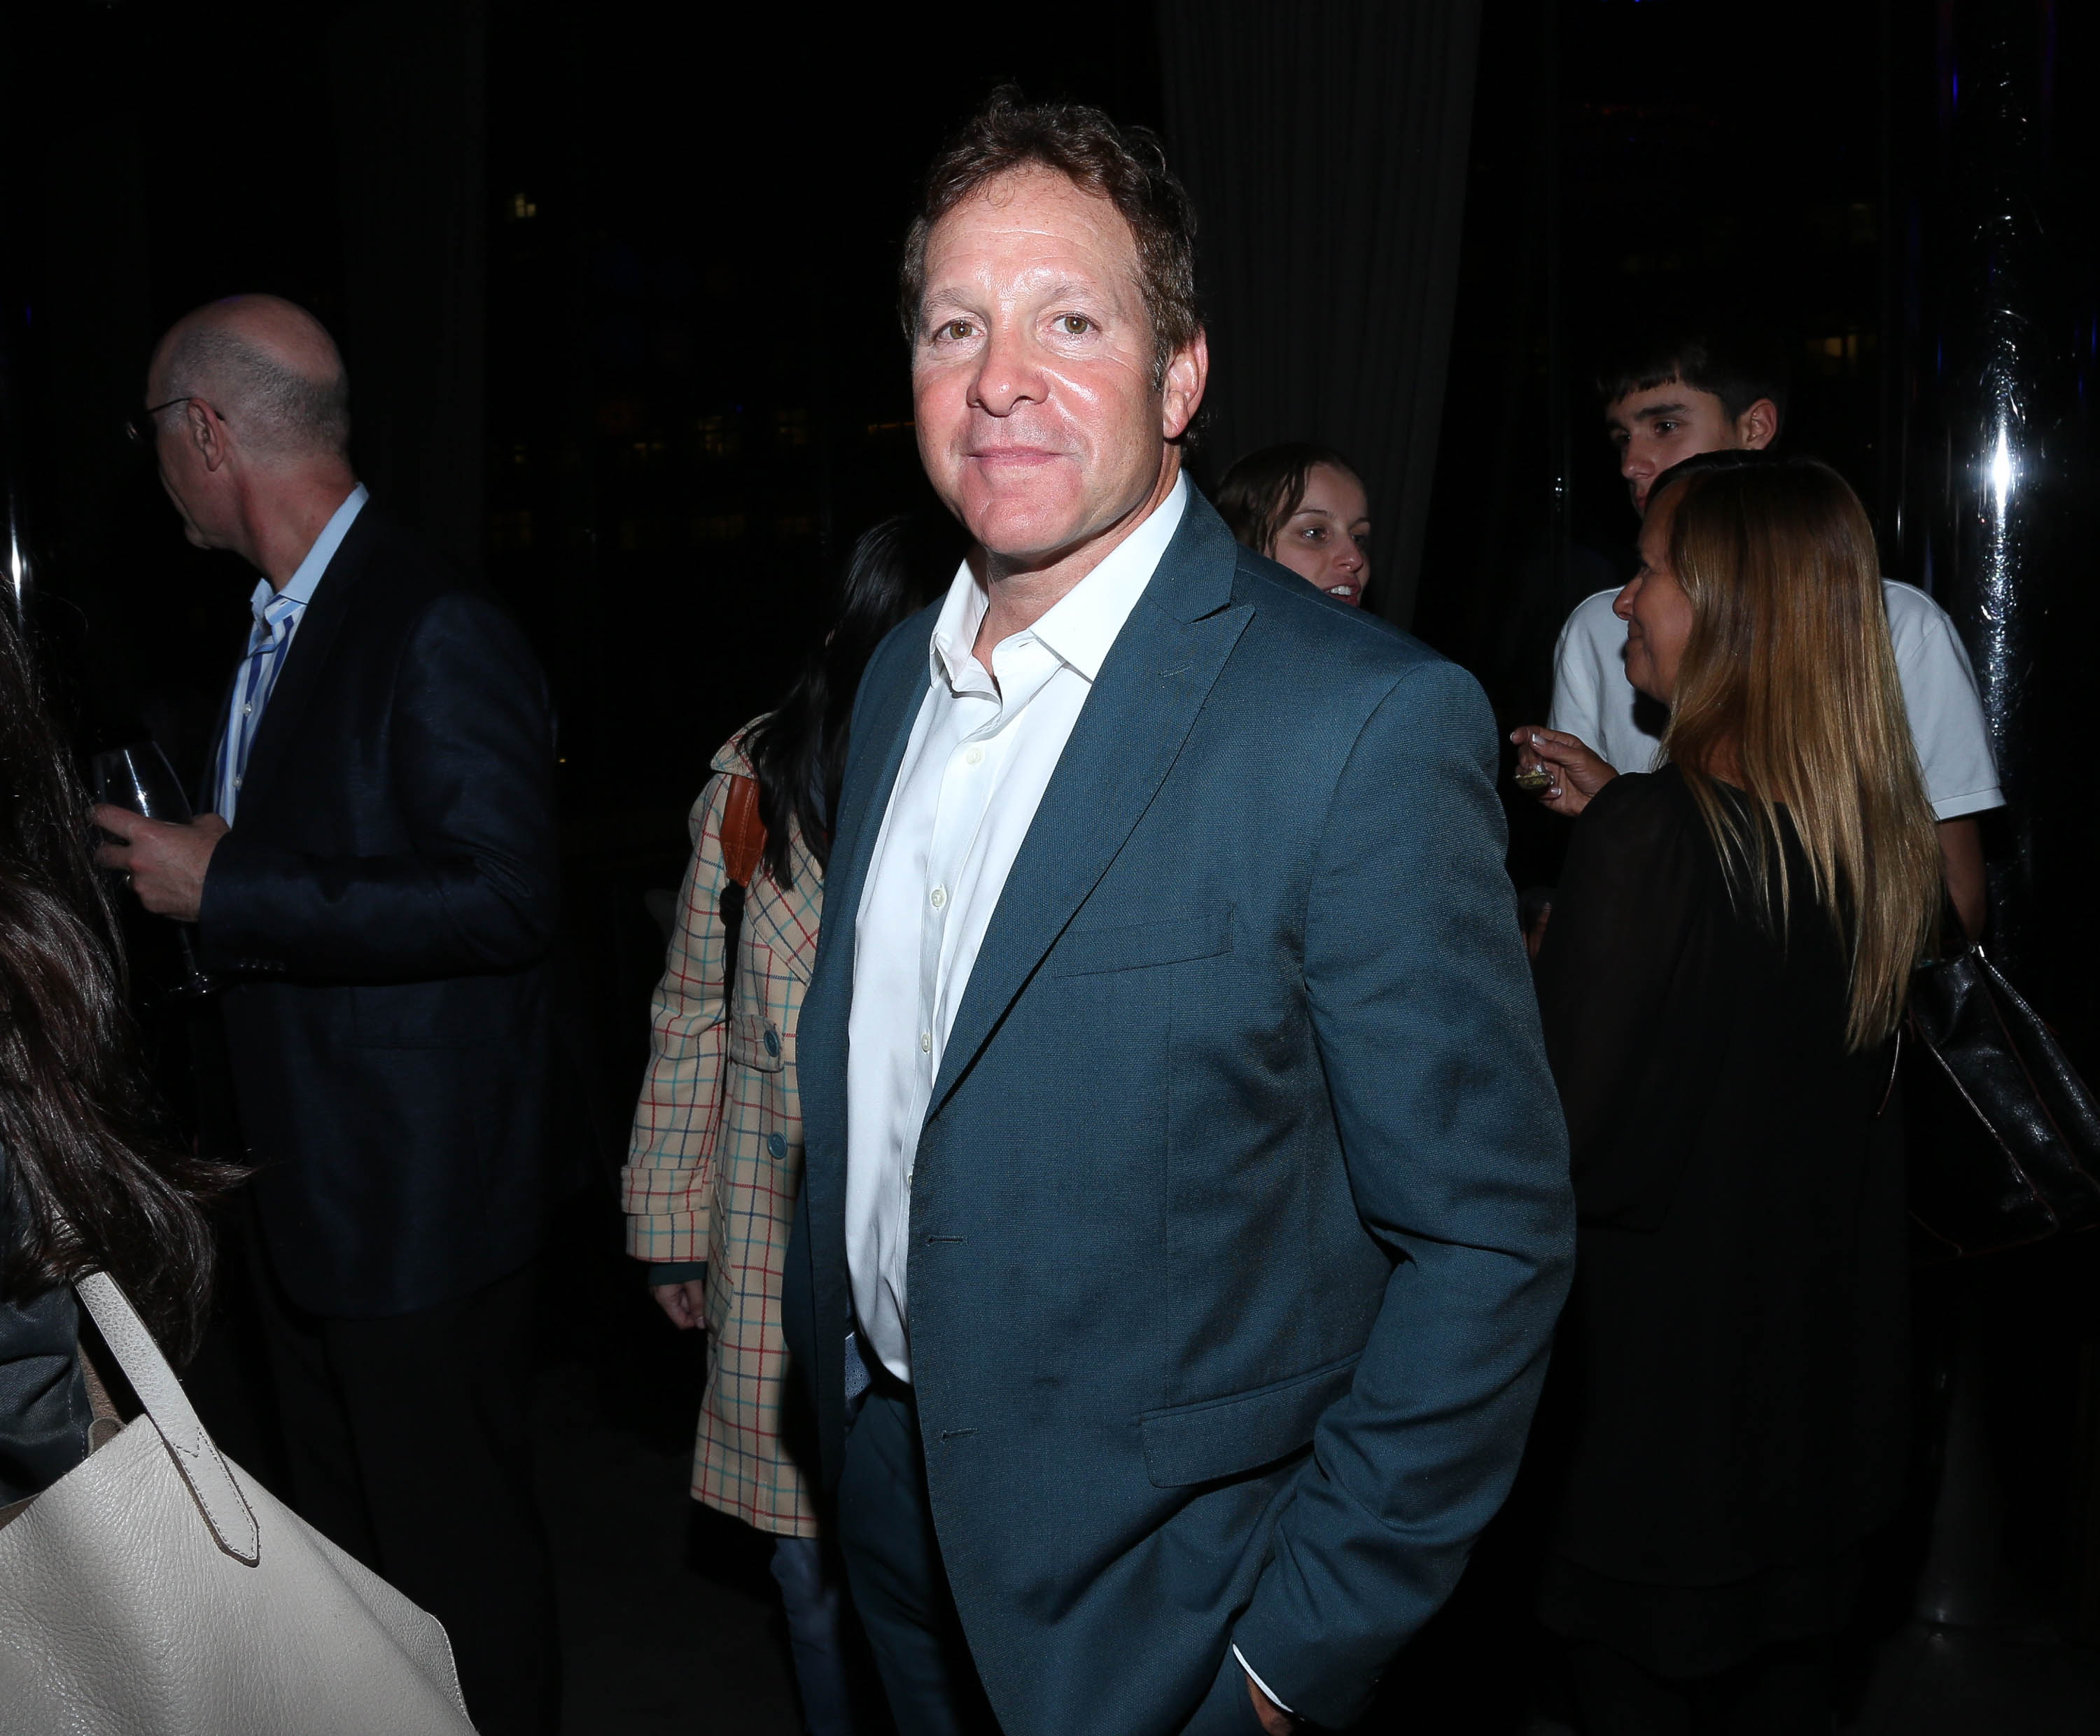 Grand Island native Emily Smith is engaged to actor Steve Guttenberg, shown attending the 2015 Tribeca Film Festival After Party. (Getty Images)